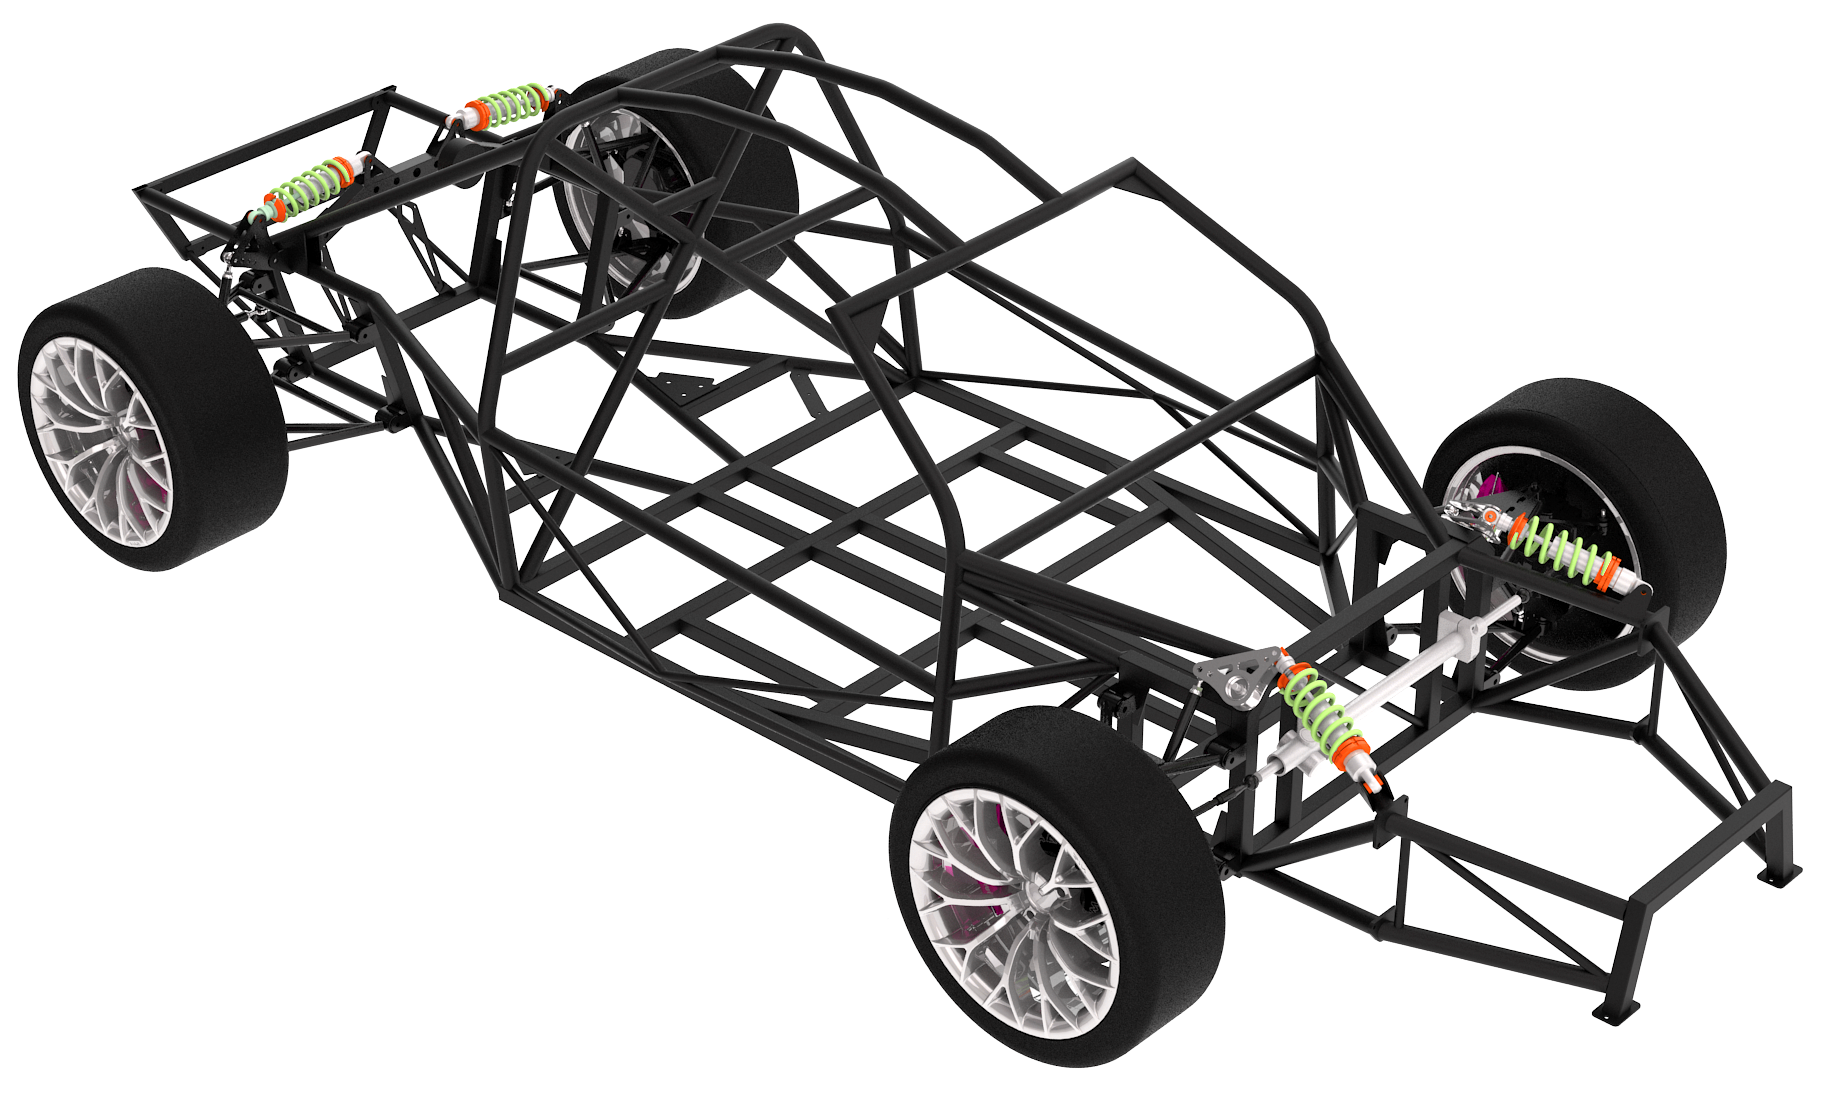 A rolling chassis race car frame.